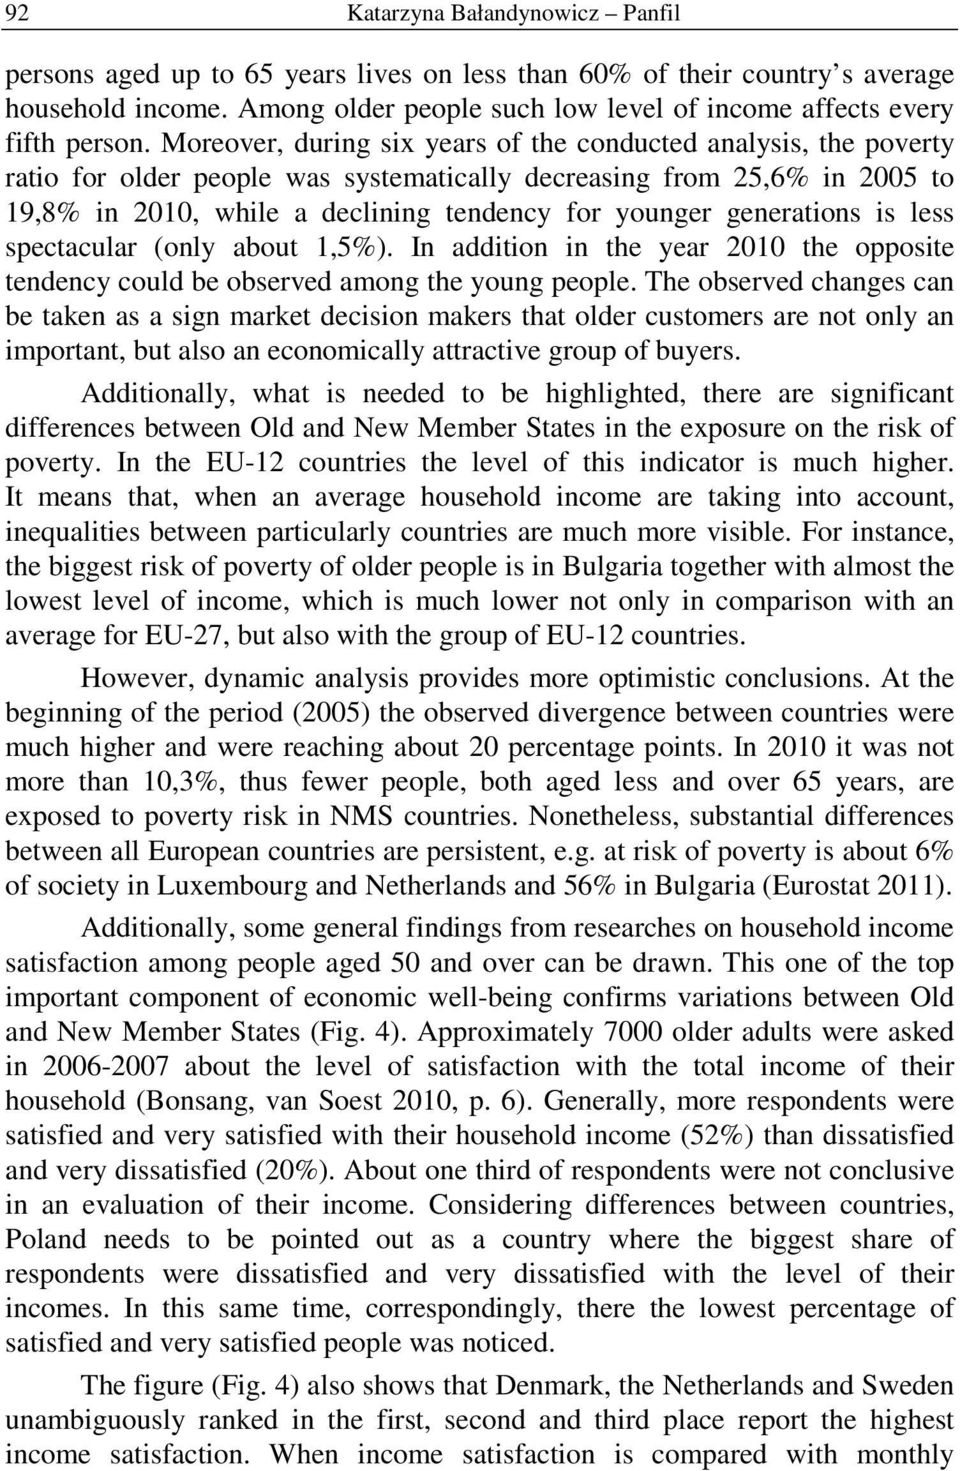 Moreover, during six years of the conducted analysis, the poverty ratio for older people was systematically decreasing from 25,6% in 2005 to 19,8% in 2010, while a declining tendency for younger